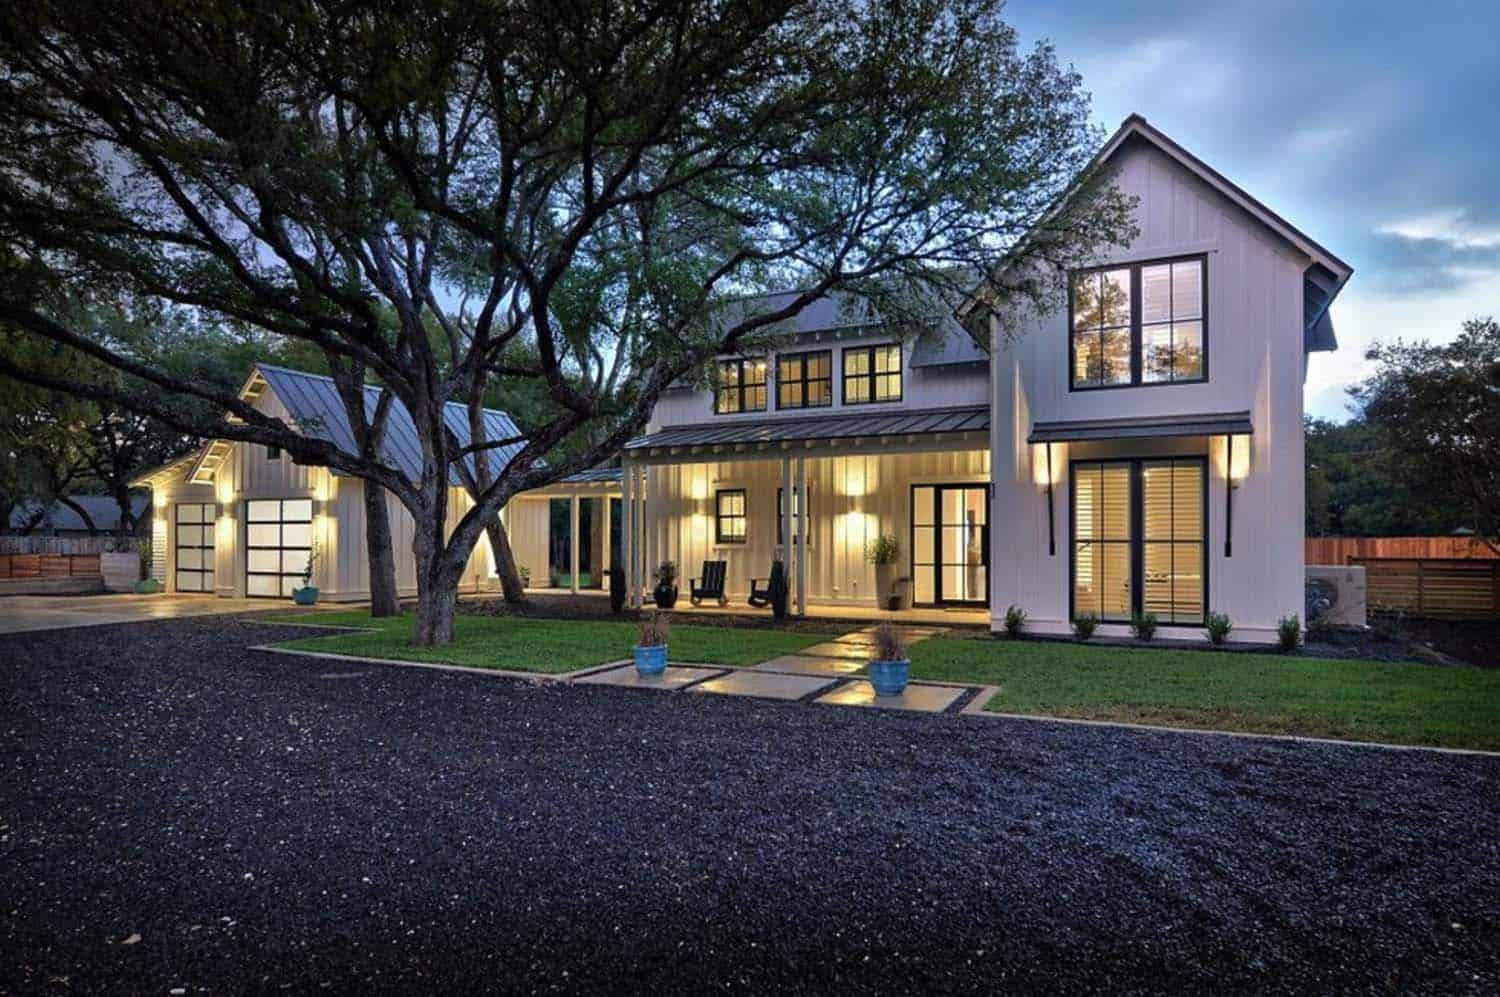 modernized texas farmhouse filled with eye catching details